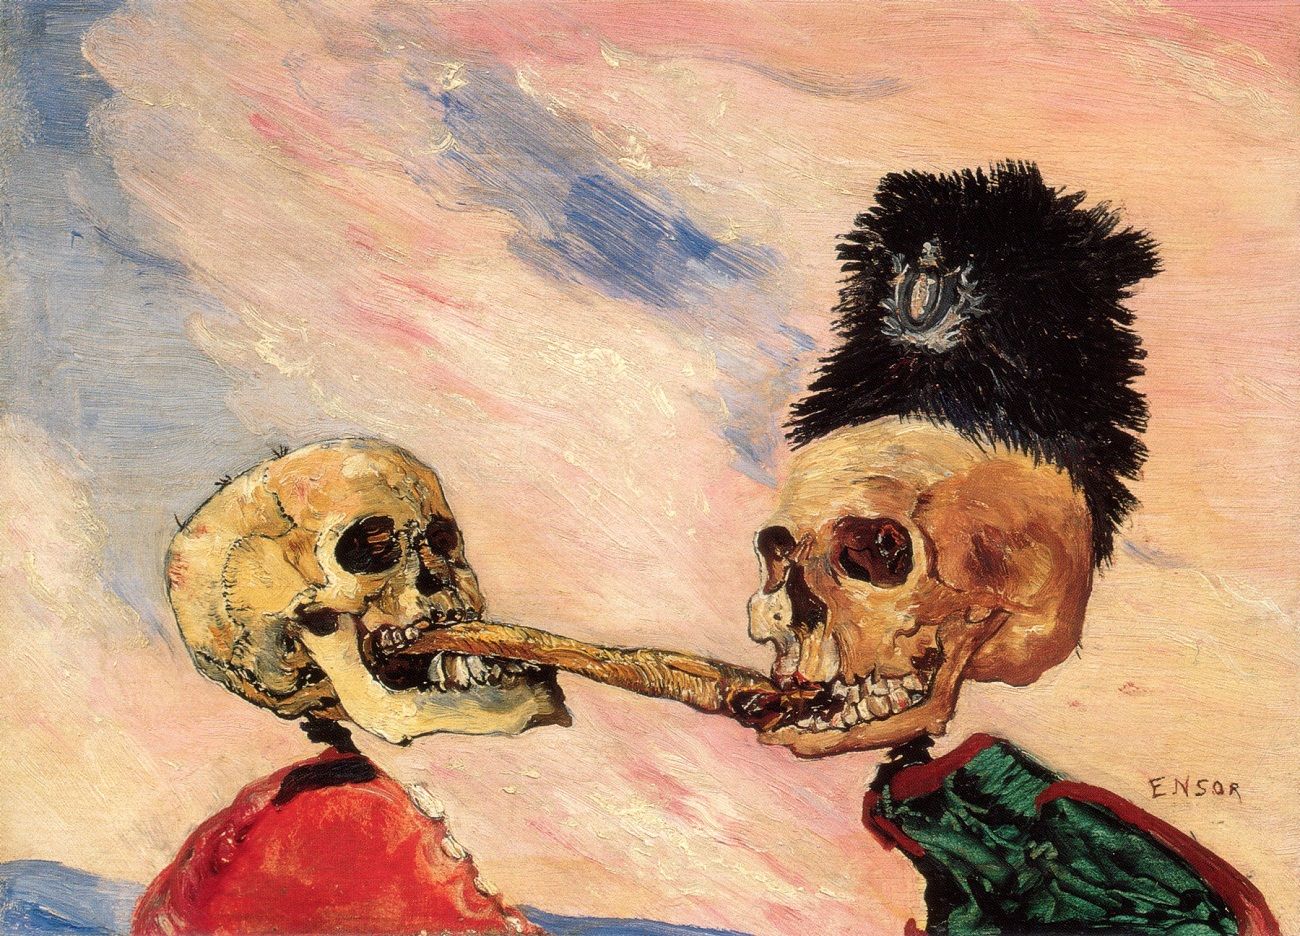 Живопись_James-Ensor_Skeletons-Fighting-Over-a-Pickled-Herring.-1891.jpg